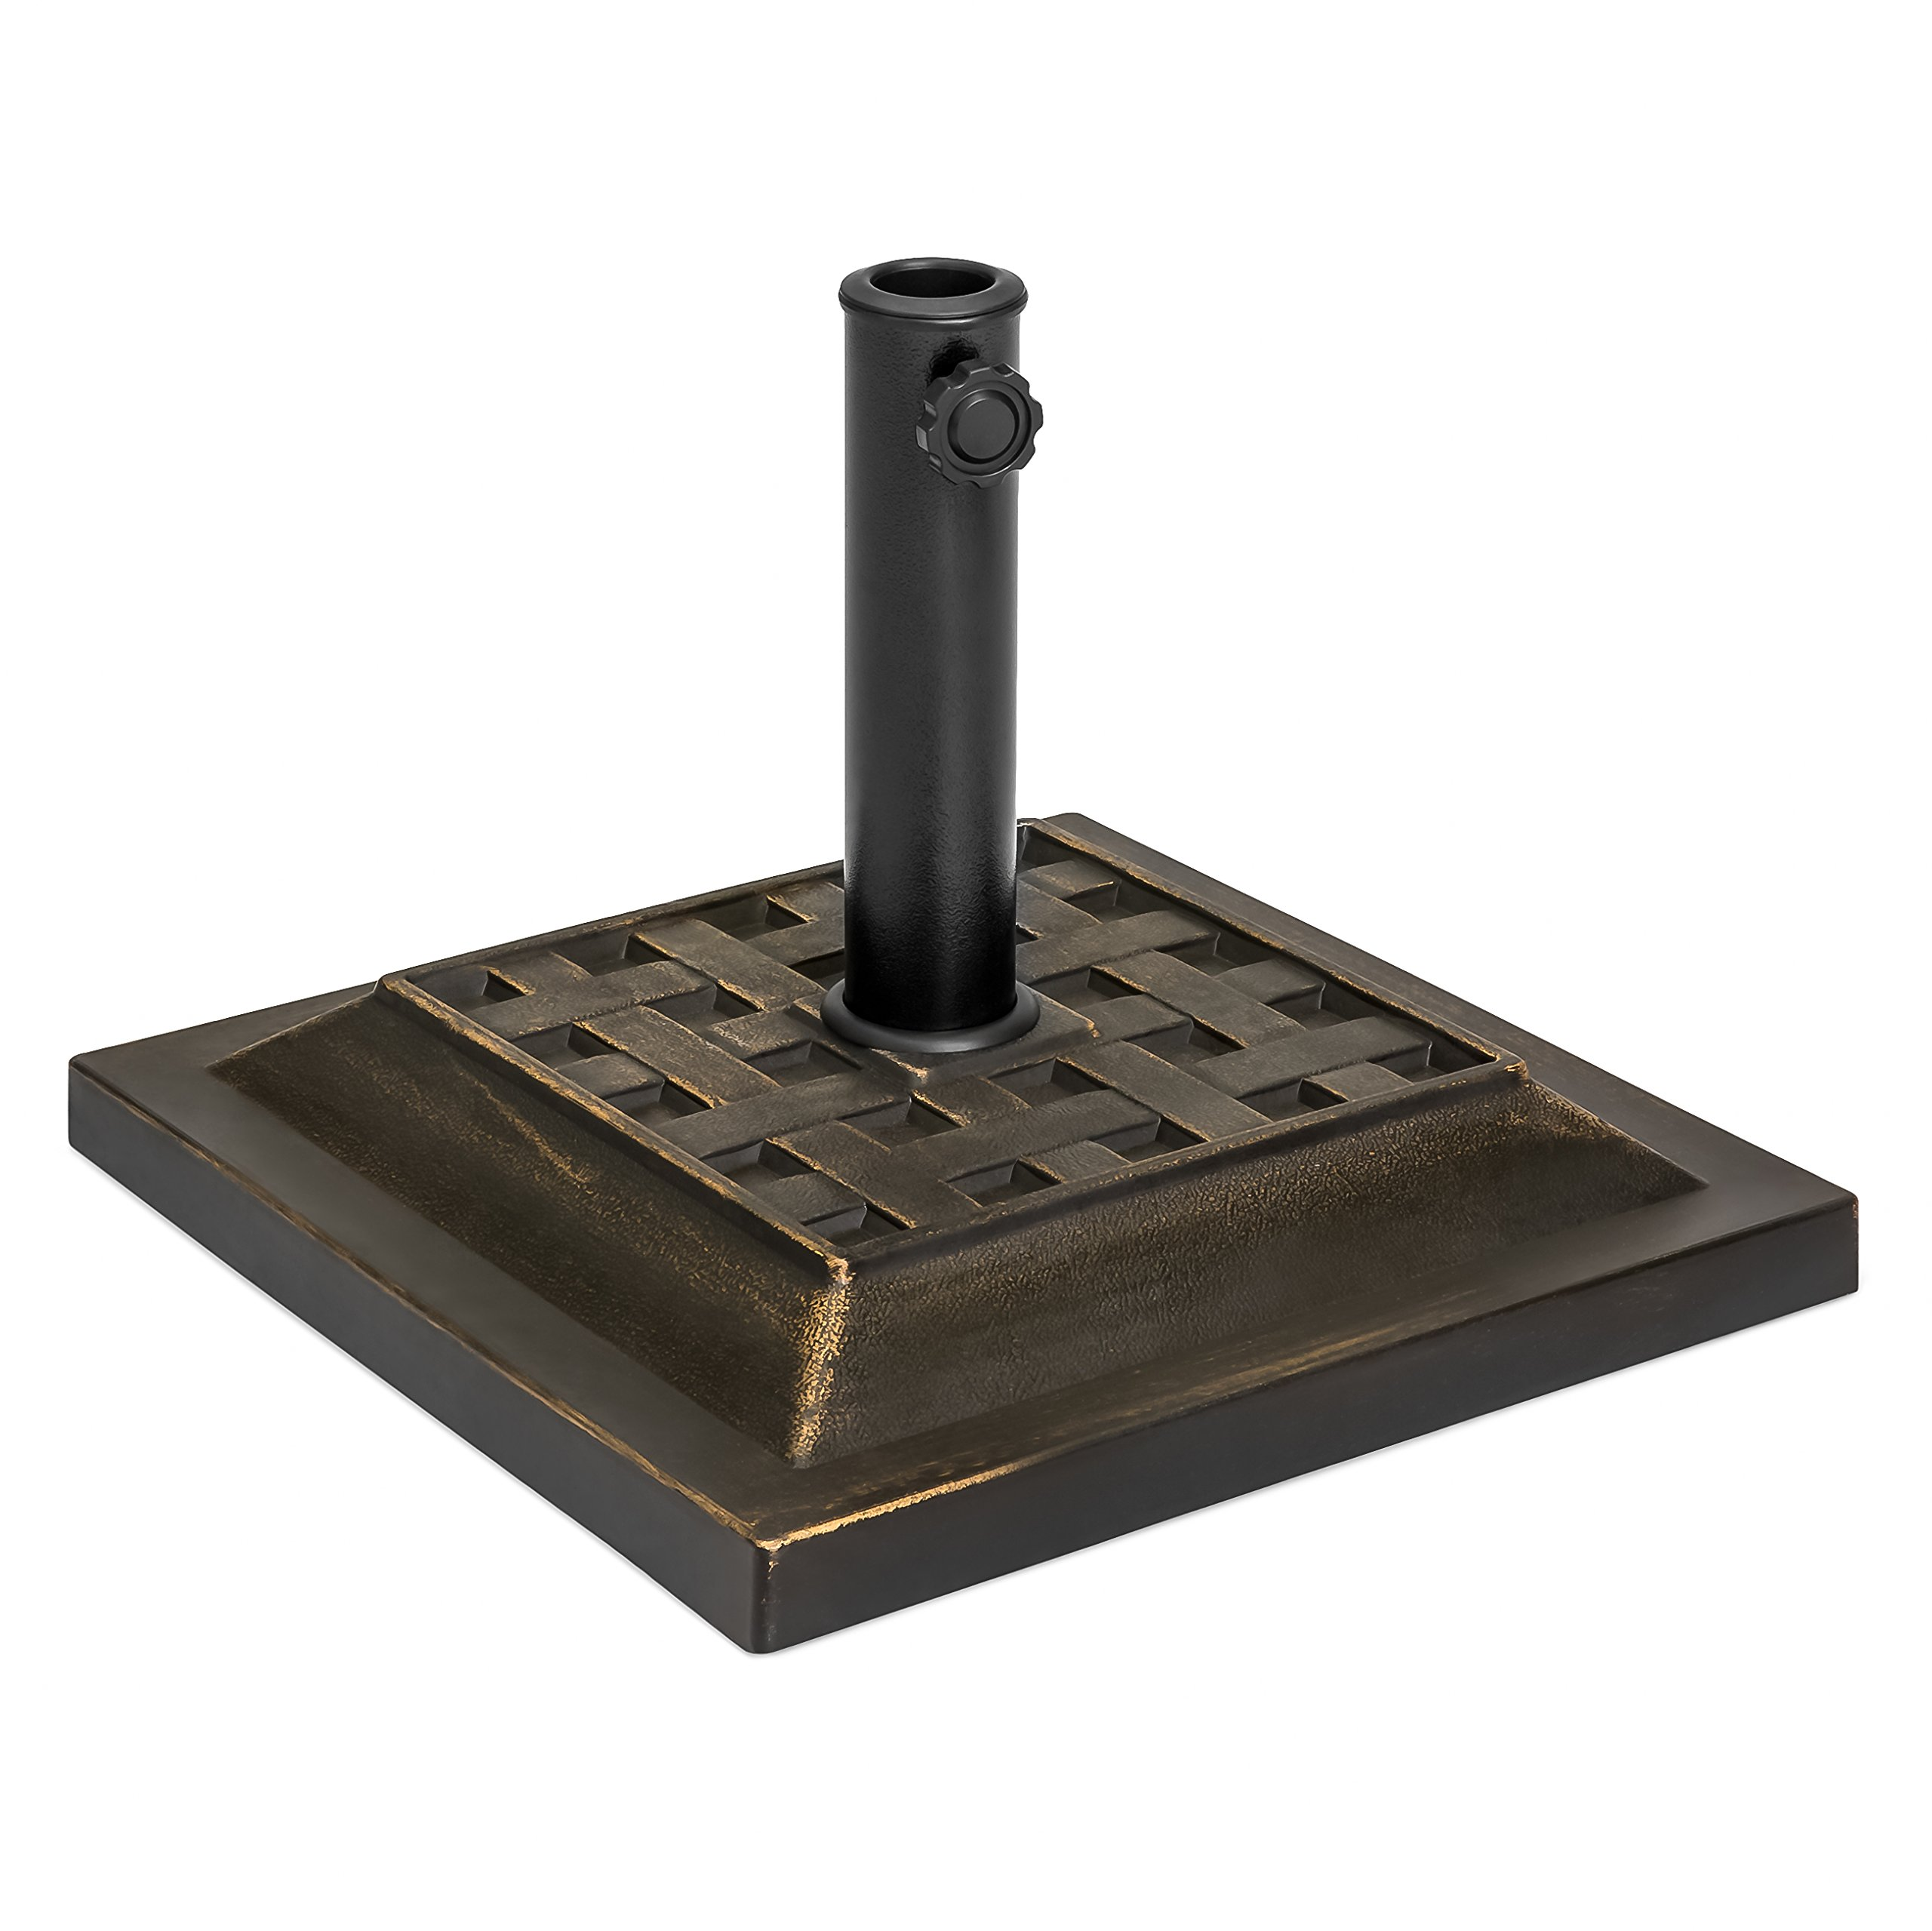 Best Choice Products Heavy Duty 26-Pound Outdoor Steel Square Patio Umbrella Base Stand w/Decorative Basketweave Pattern, Black by Best Choice Products